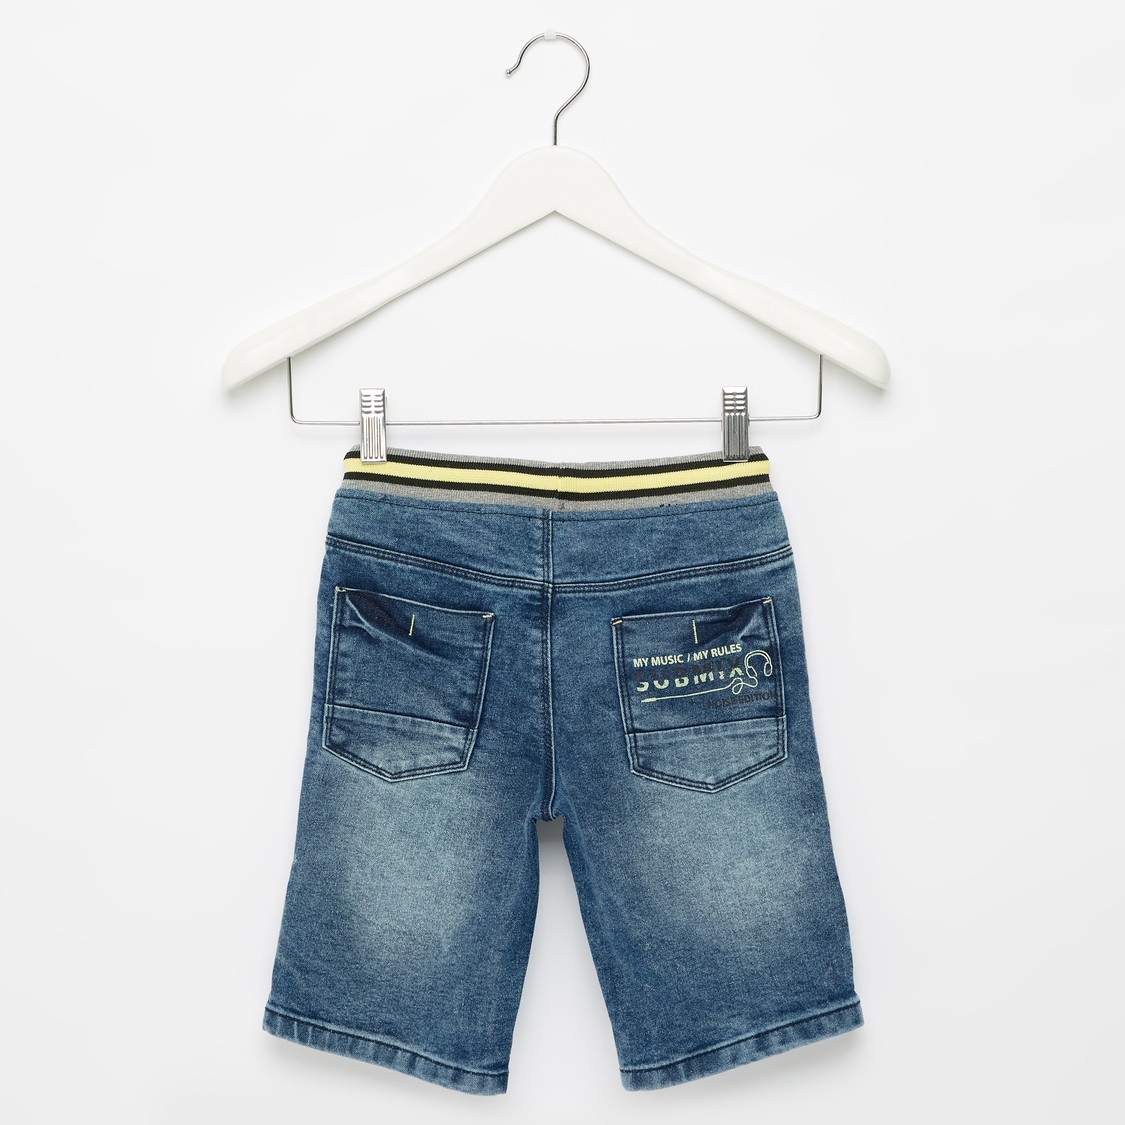 Embossed Print Denim Shorts with Pockets and Drawstring